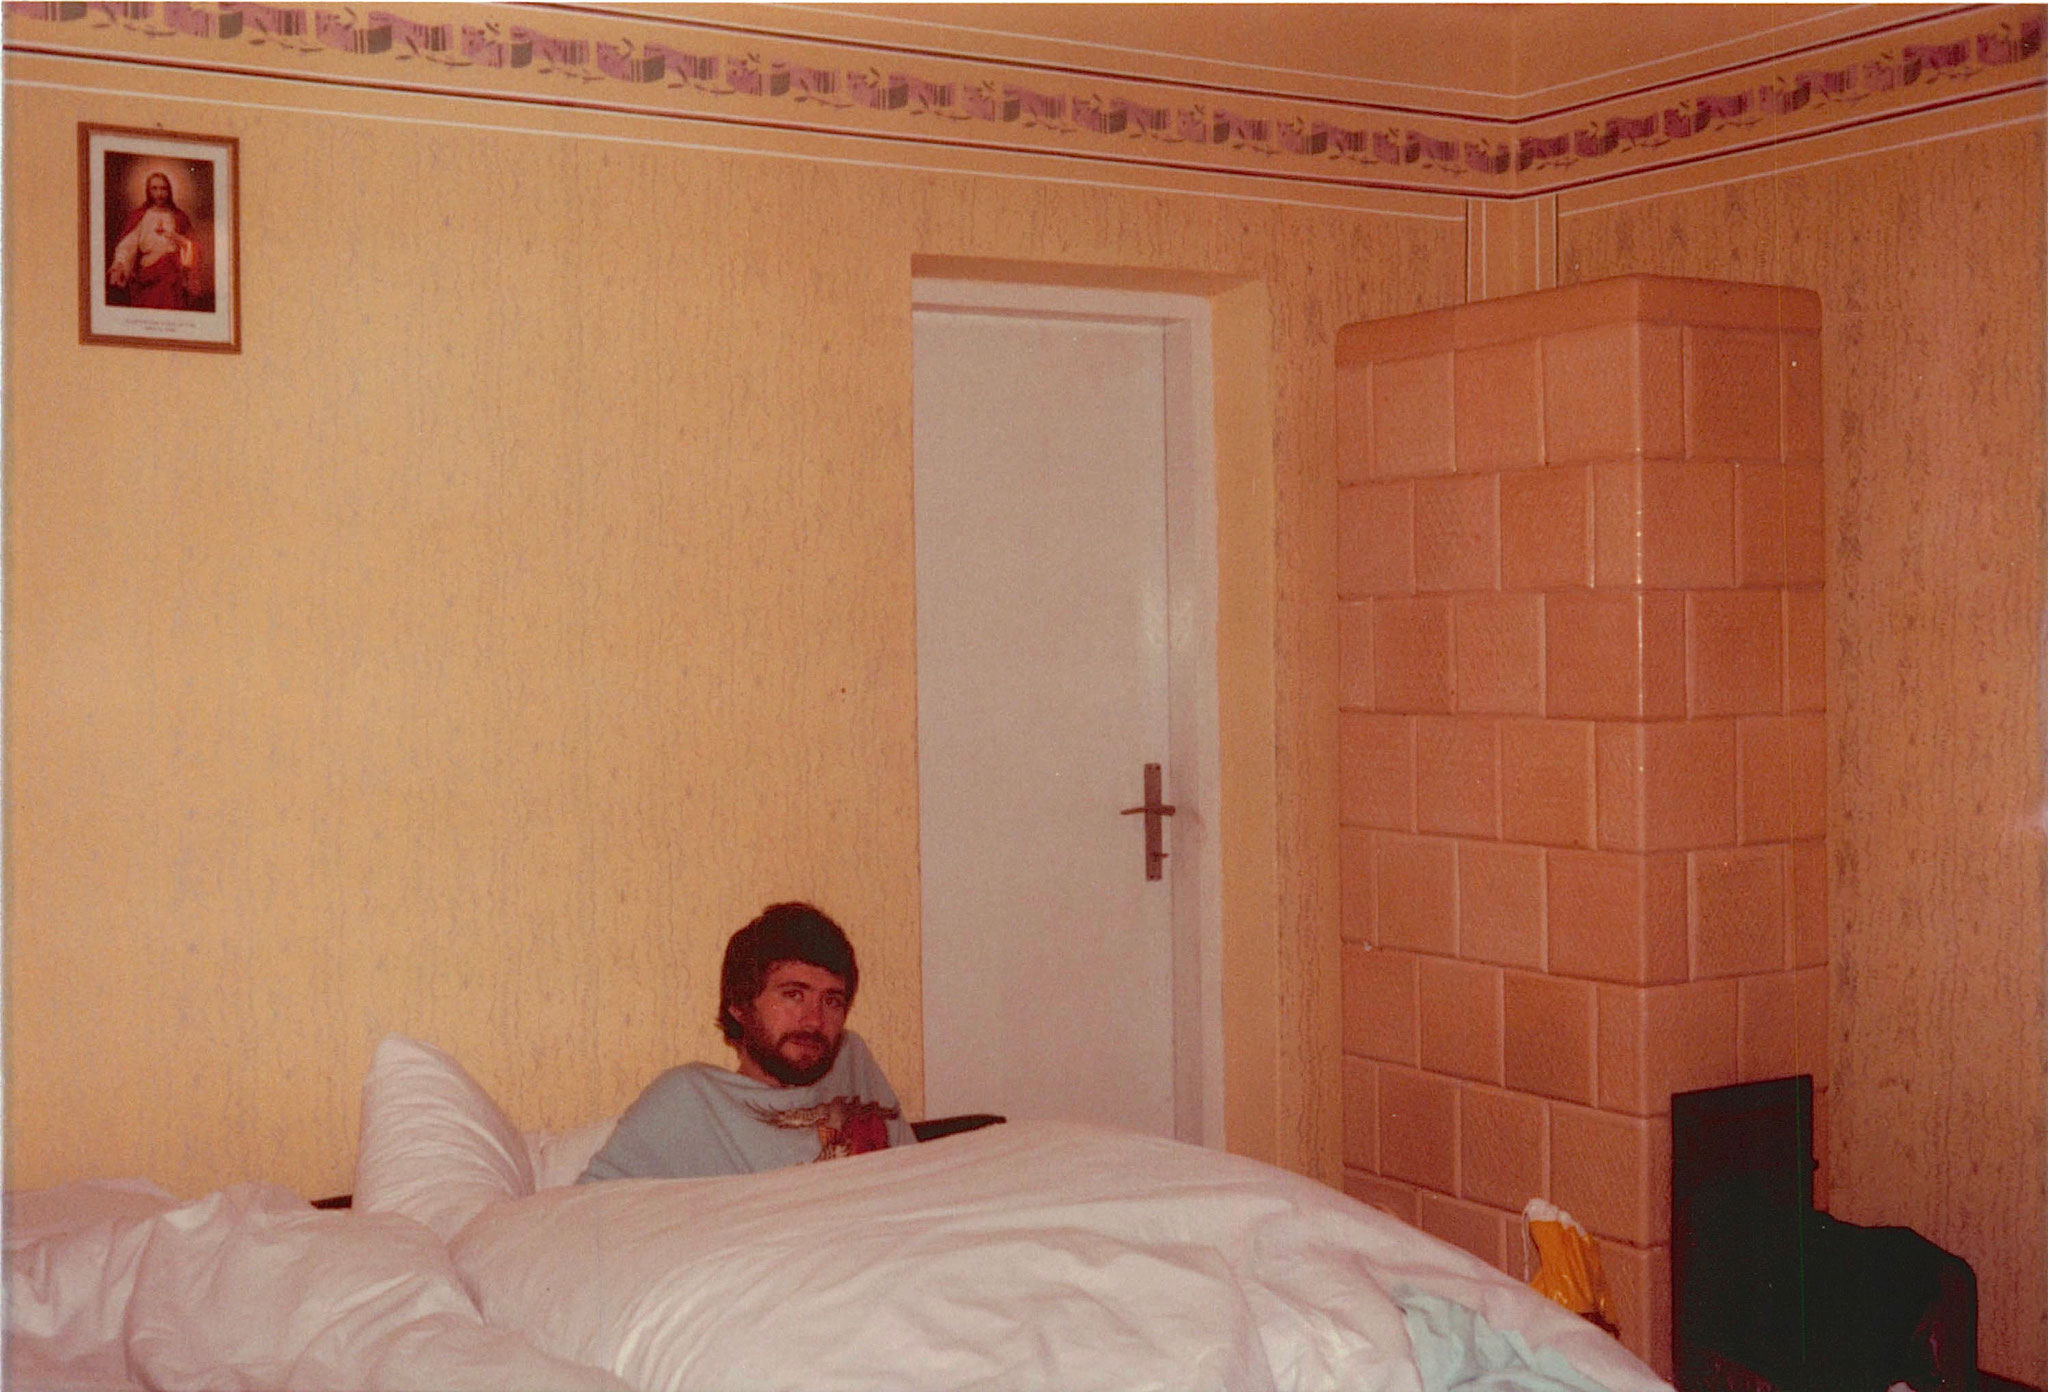 John in the big bed all four of us (Eleanor, Mayme, John & Lorraine) slept in at Genek & Jadwiga's home, with down covers